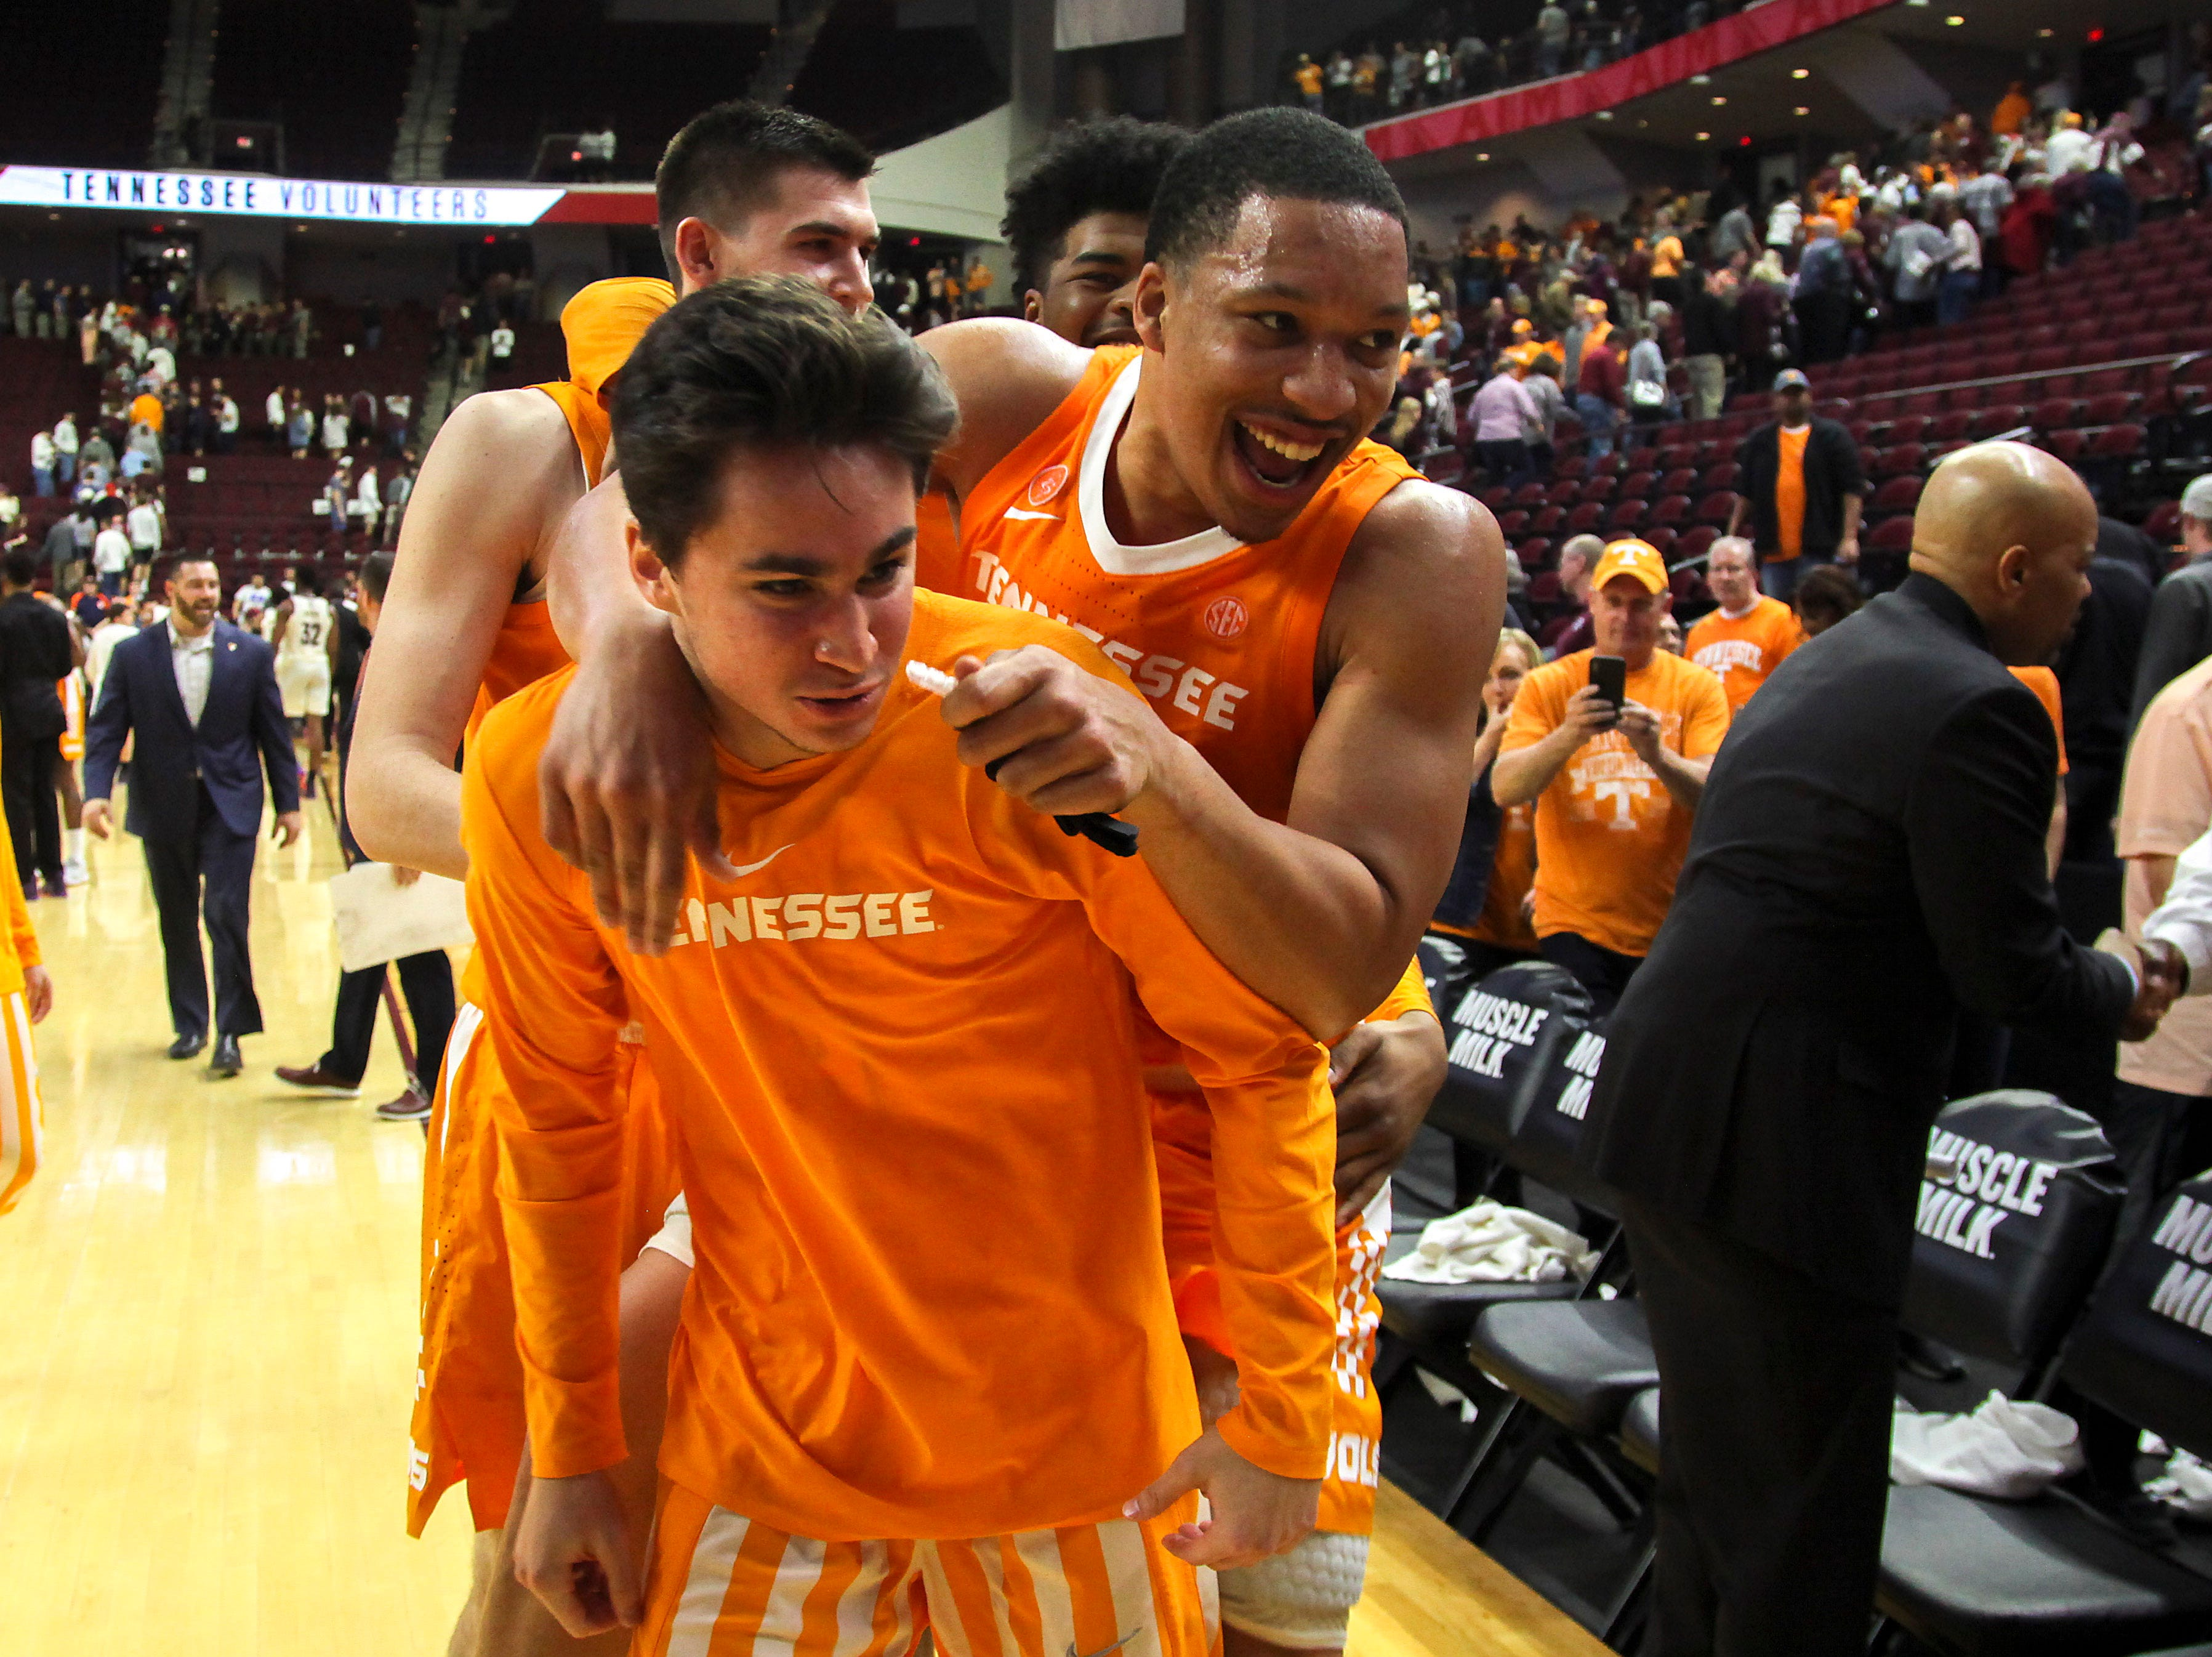 Feb 2, 2019; College Station, TX, USA; Tennessee Volunteers guard Jacob Fleschman (4) and forward Grant Williams (2) celebrate after the Volunteers defeat the Texas A&M Aggies at Reed Arena.